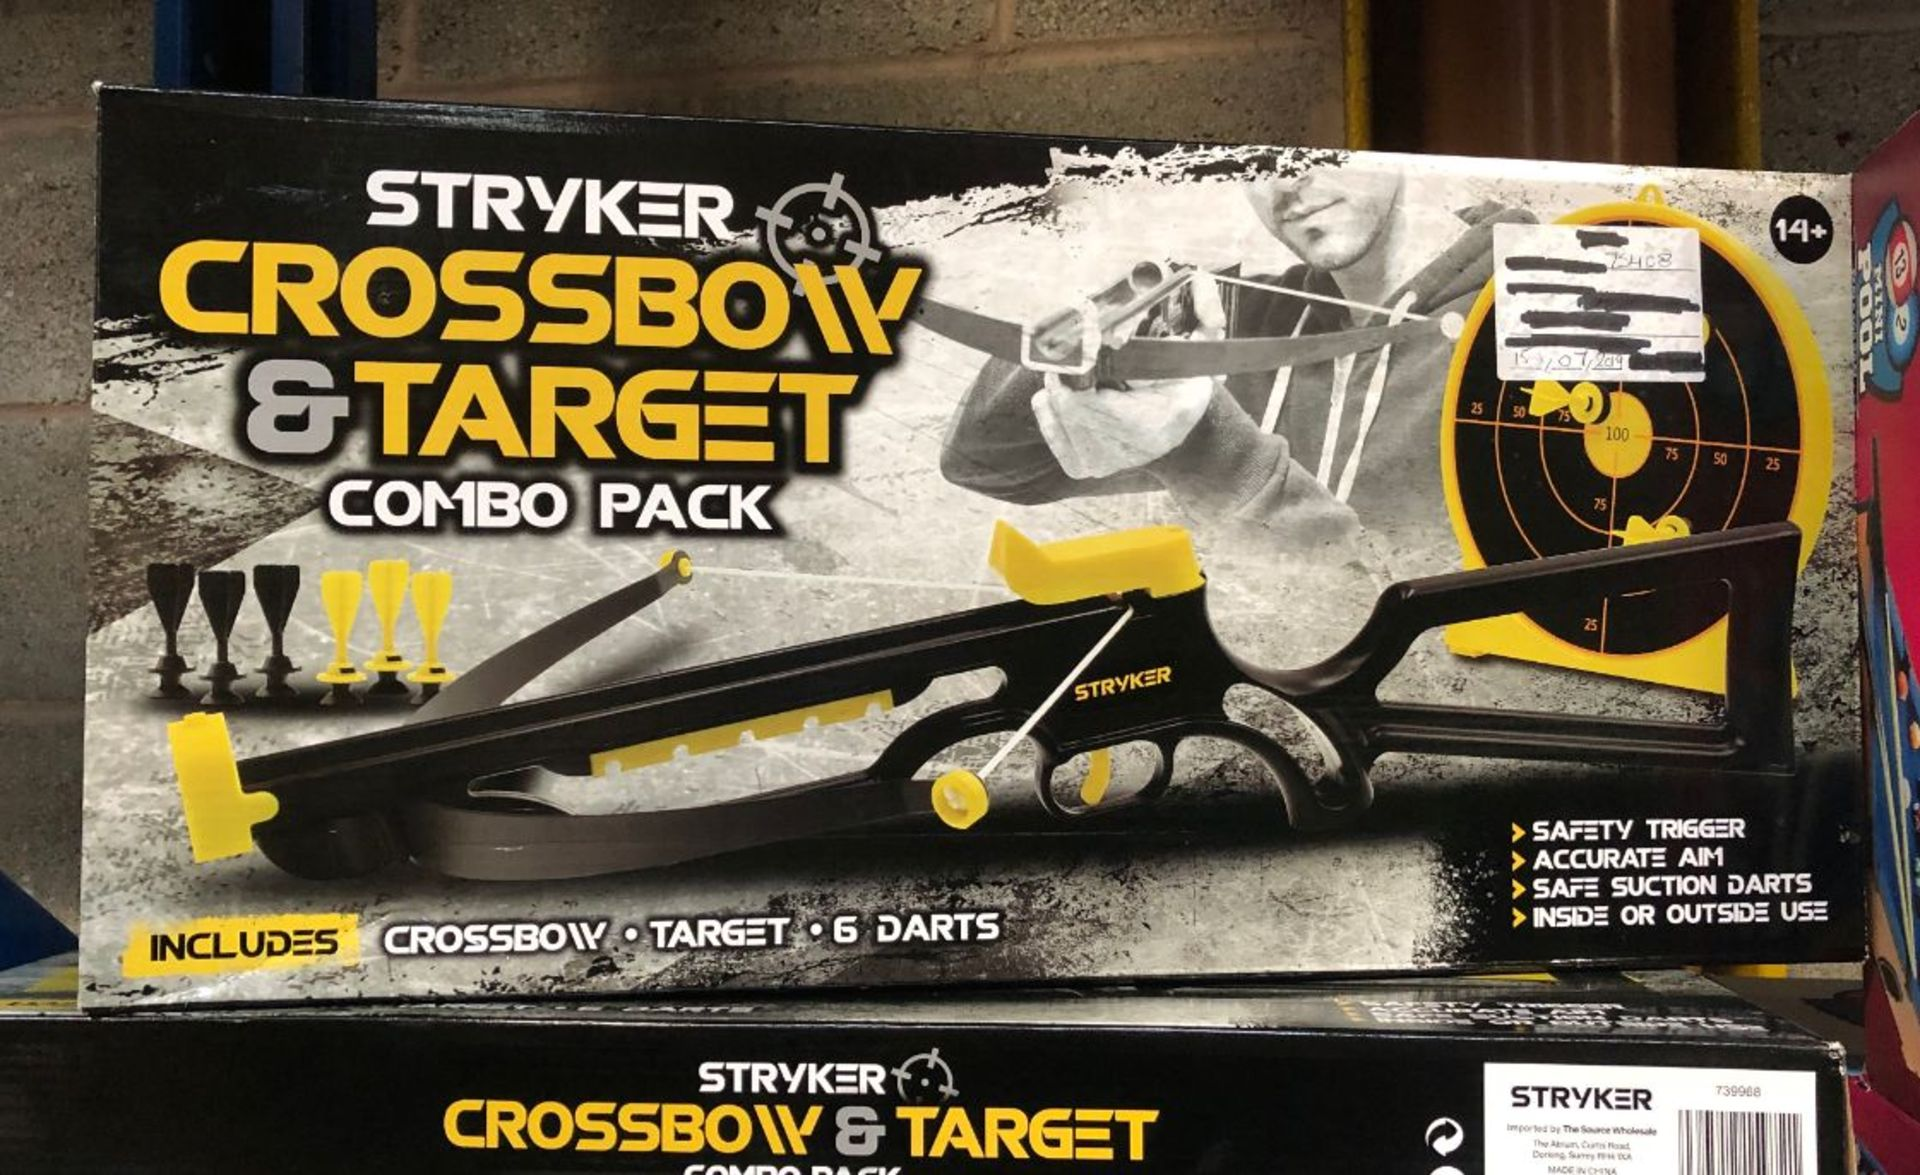 Lot 96 - 5 X STRYKER CROSSBOW AND TARGET COMBO PACK / COMBINED RRP £75.00 / UNTESTED CUSTOMER RETURNS